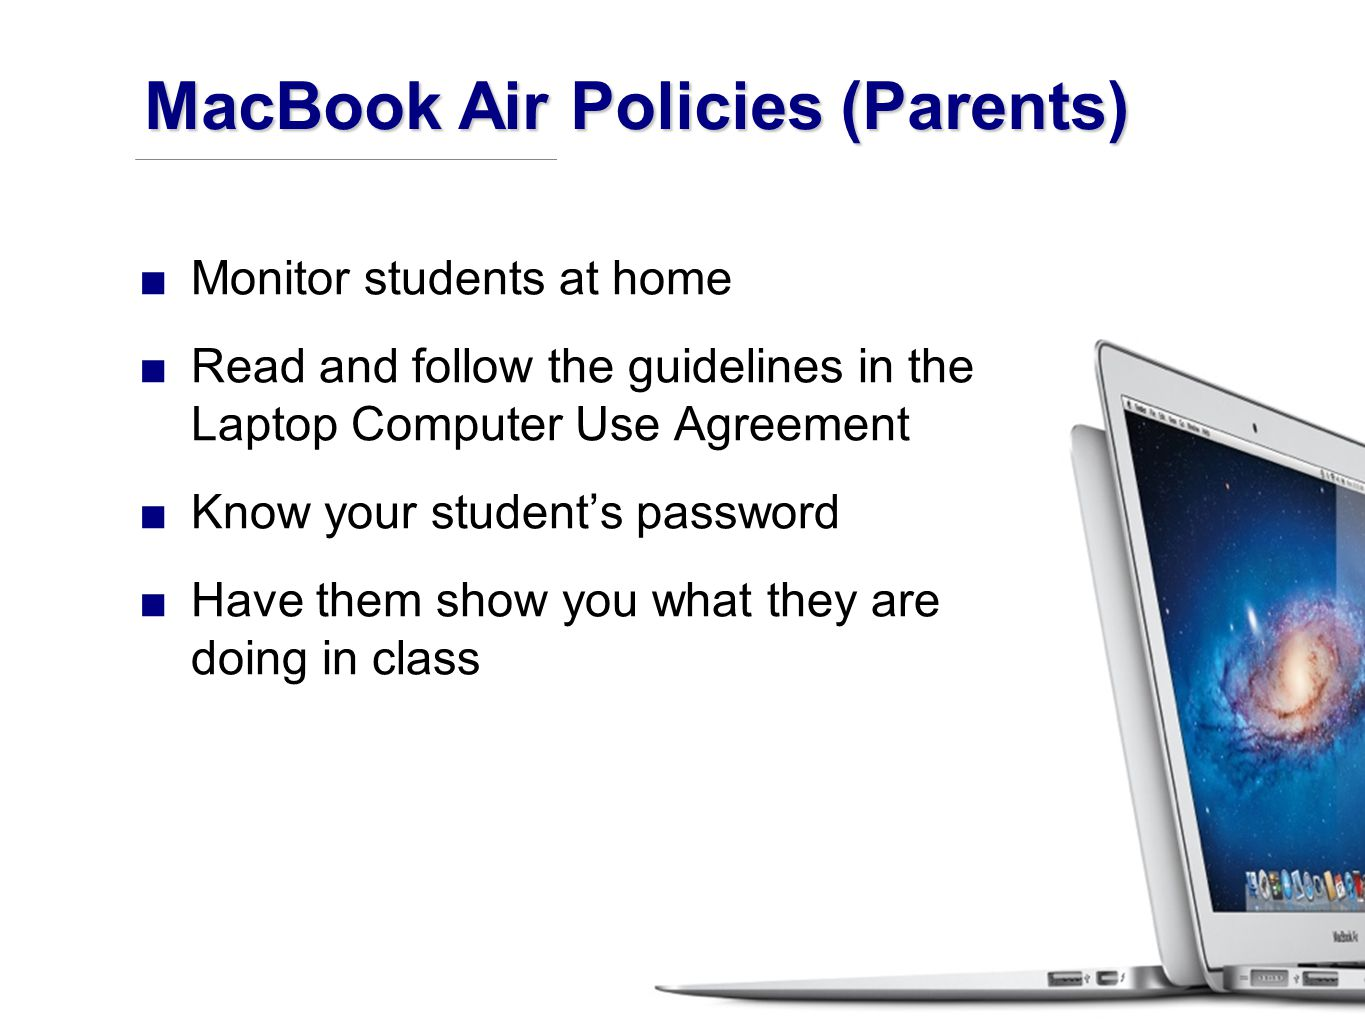 ■Monitor students at home ■Read and follow the guidelines in the Laptop Computer Use Agreement ■Know your student's password ■Have them show you what they are doing in class MacBook Air Policies (Parents)